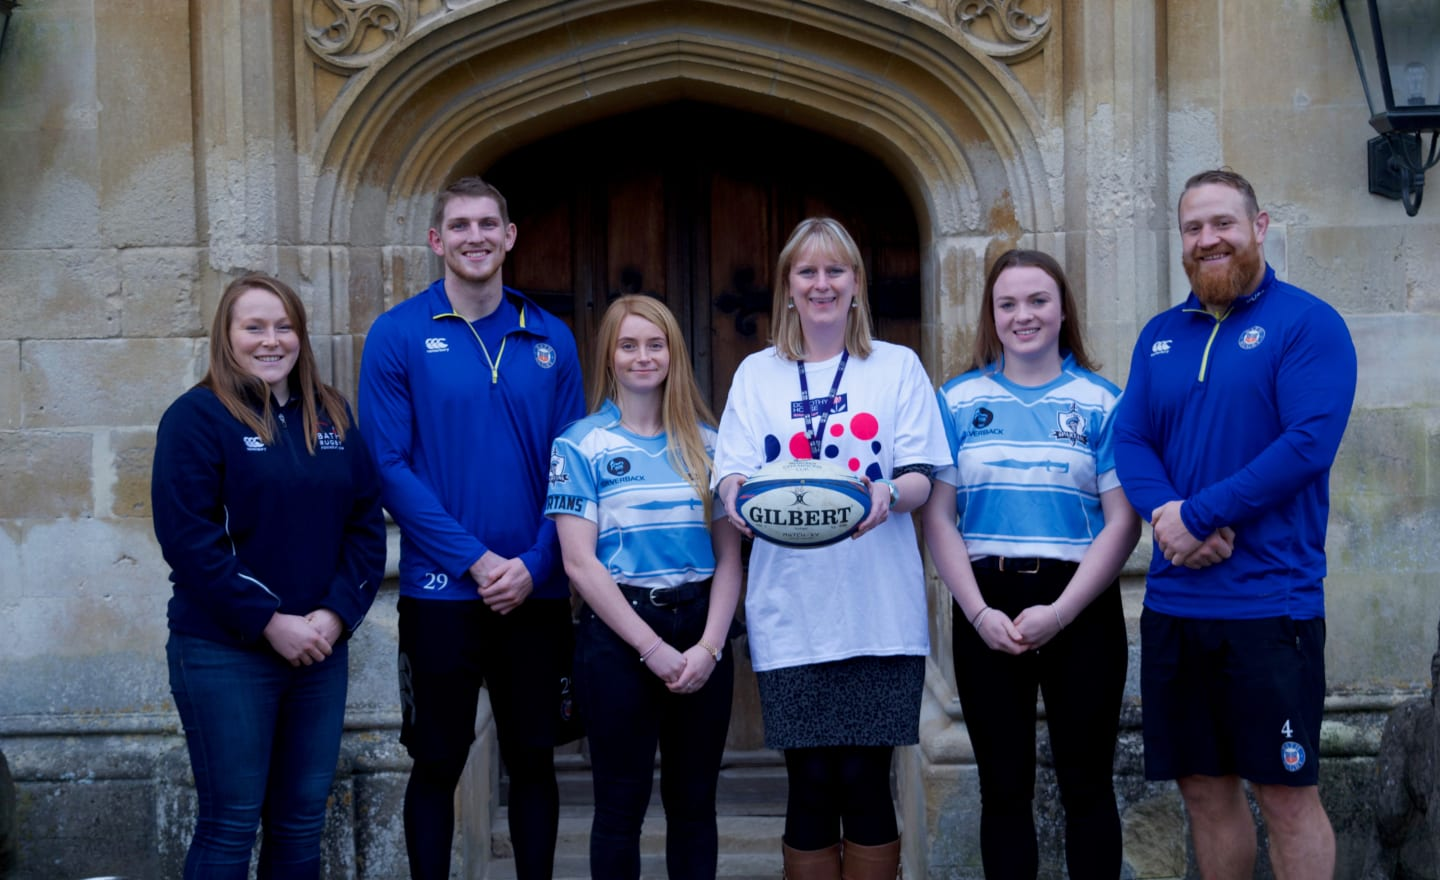 Calling Bath Rugby fans - join our fundraising walk